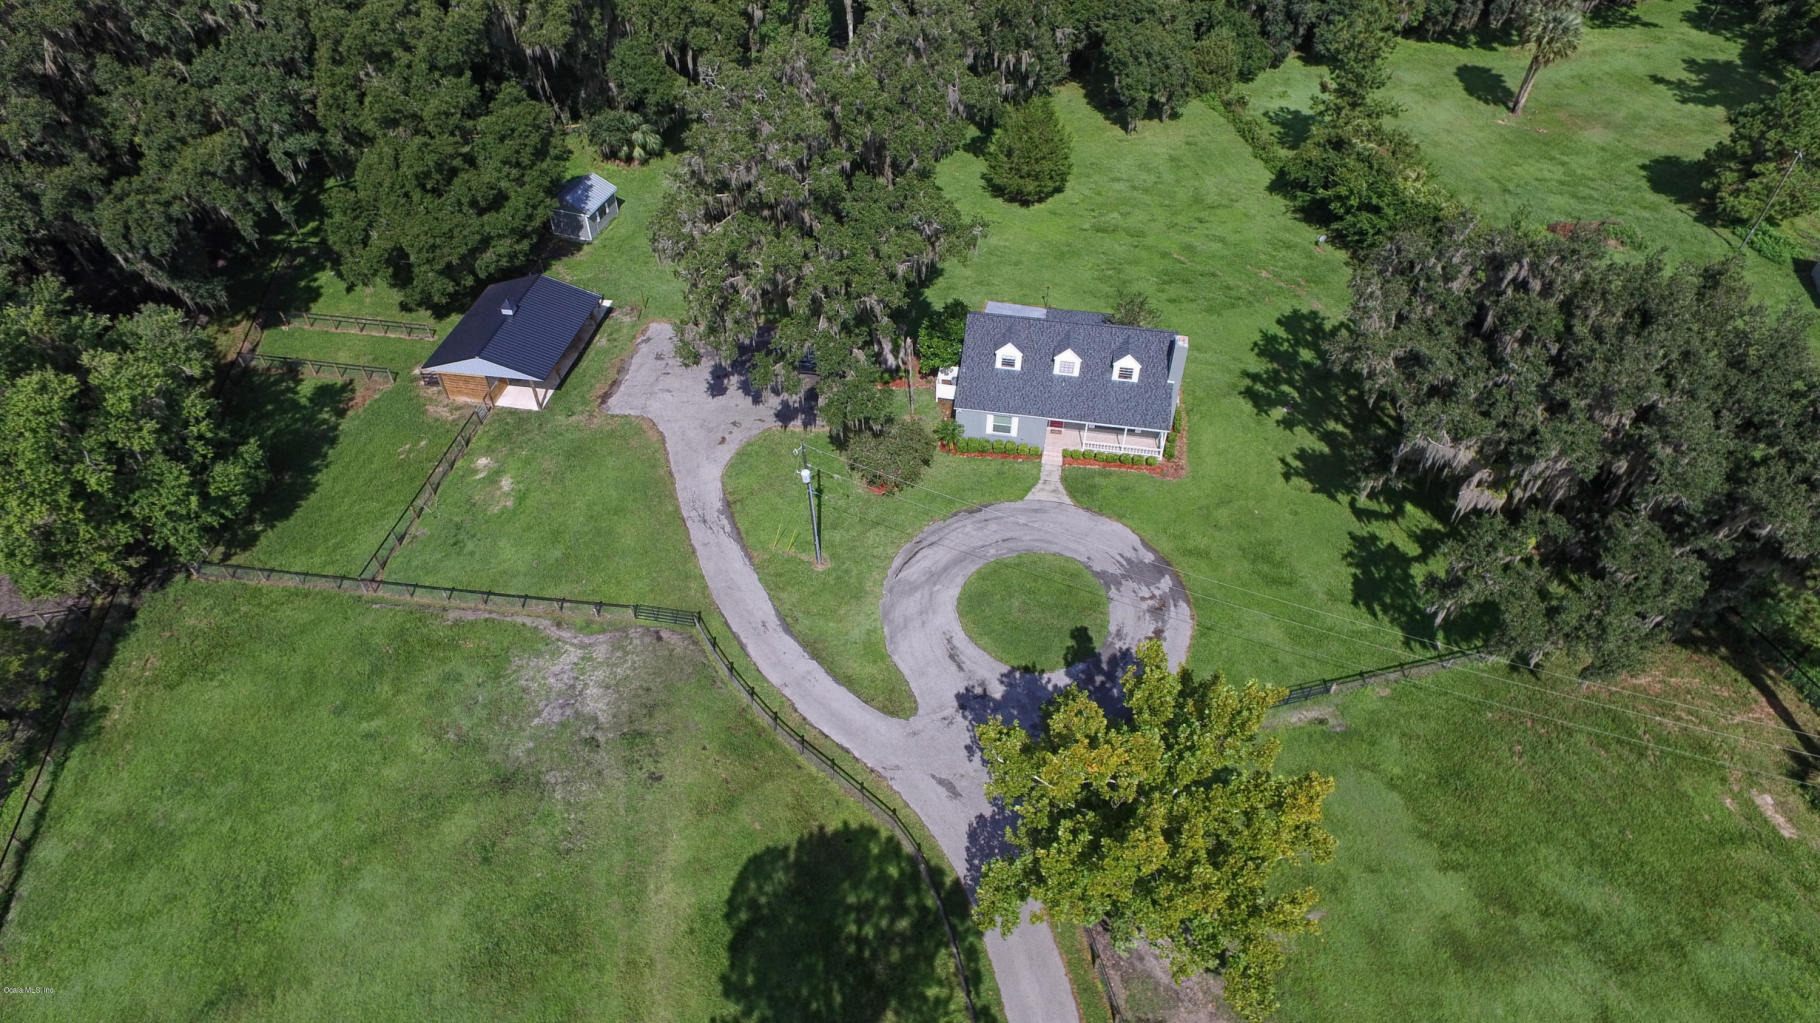 Aerial View_12344 SE 47th Ave., Belleview, FL 34420